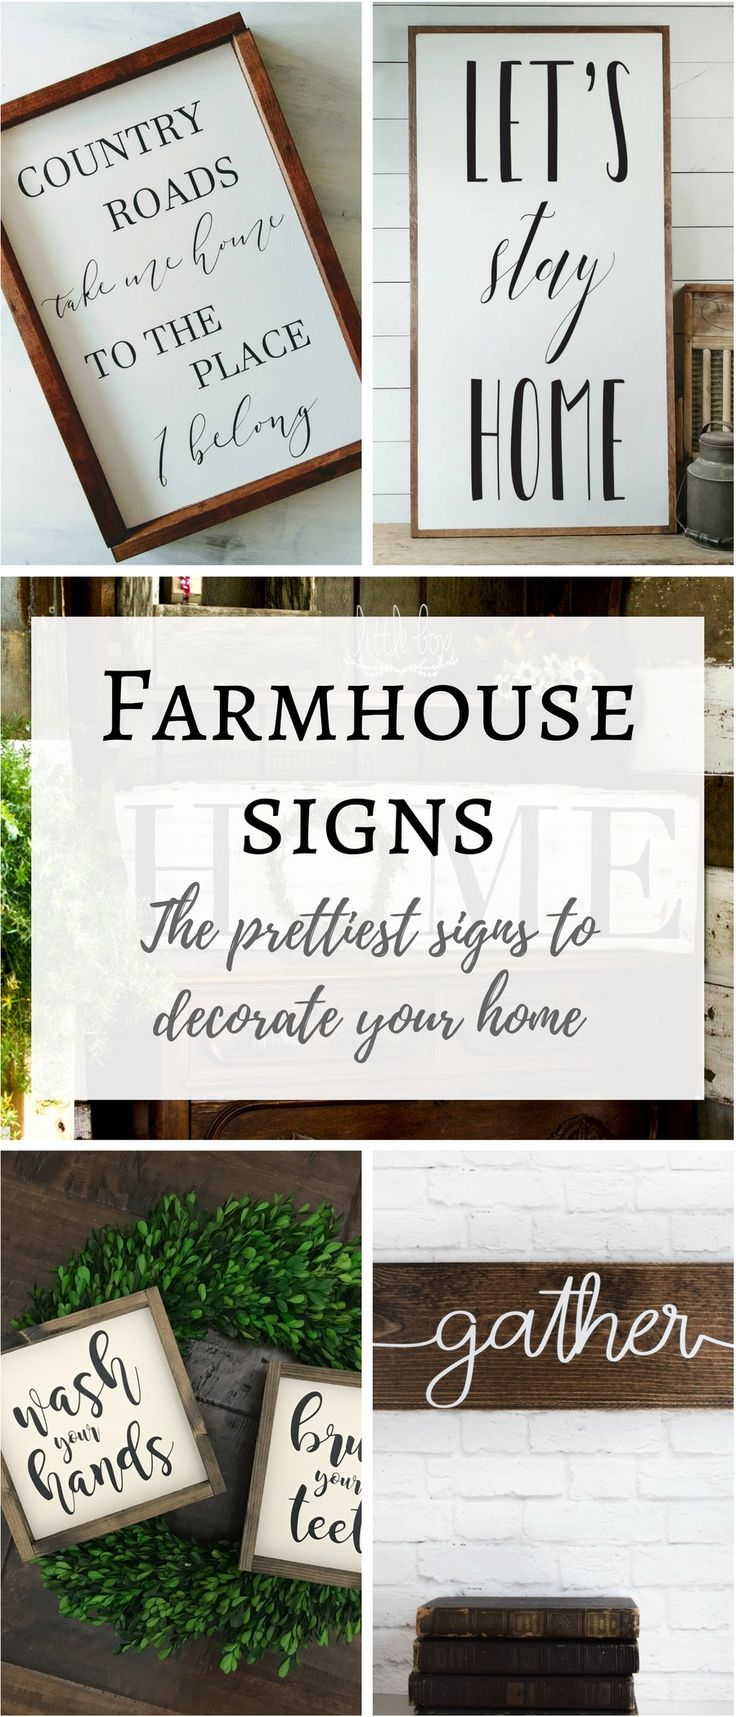 I have found the prettiest Farmhouse Style Signs and listed them here! Farmhouse Decor, Farmhouse Sign, White Wood Sign, Wedding Gift, Housewarming Gift, Wooden Sign #farmhousestyle #farmhousesign #farmhousechic #farmhousediy #woodensigns #housewarminggift #ad